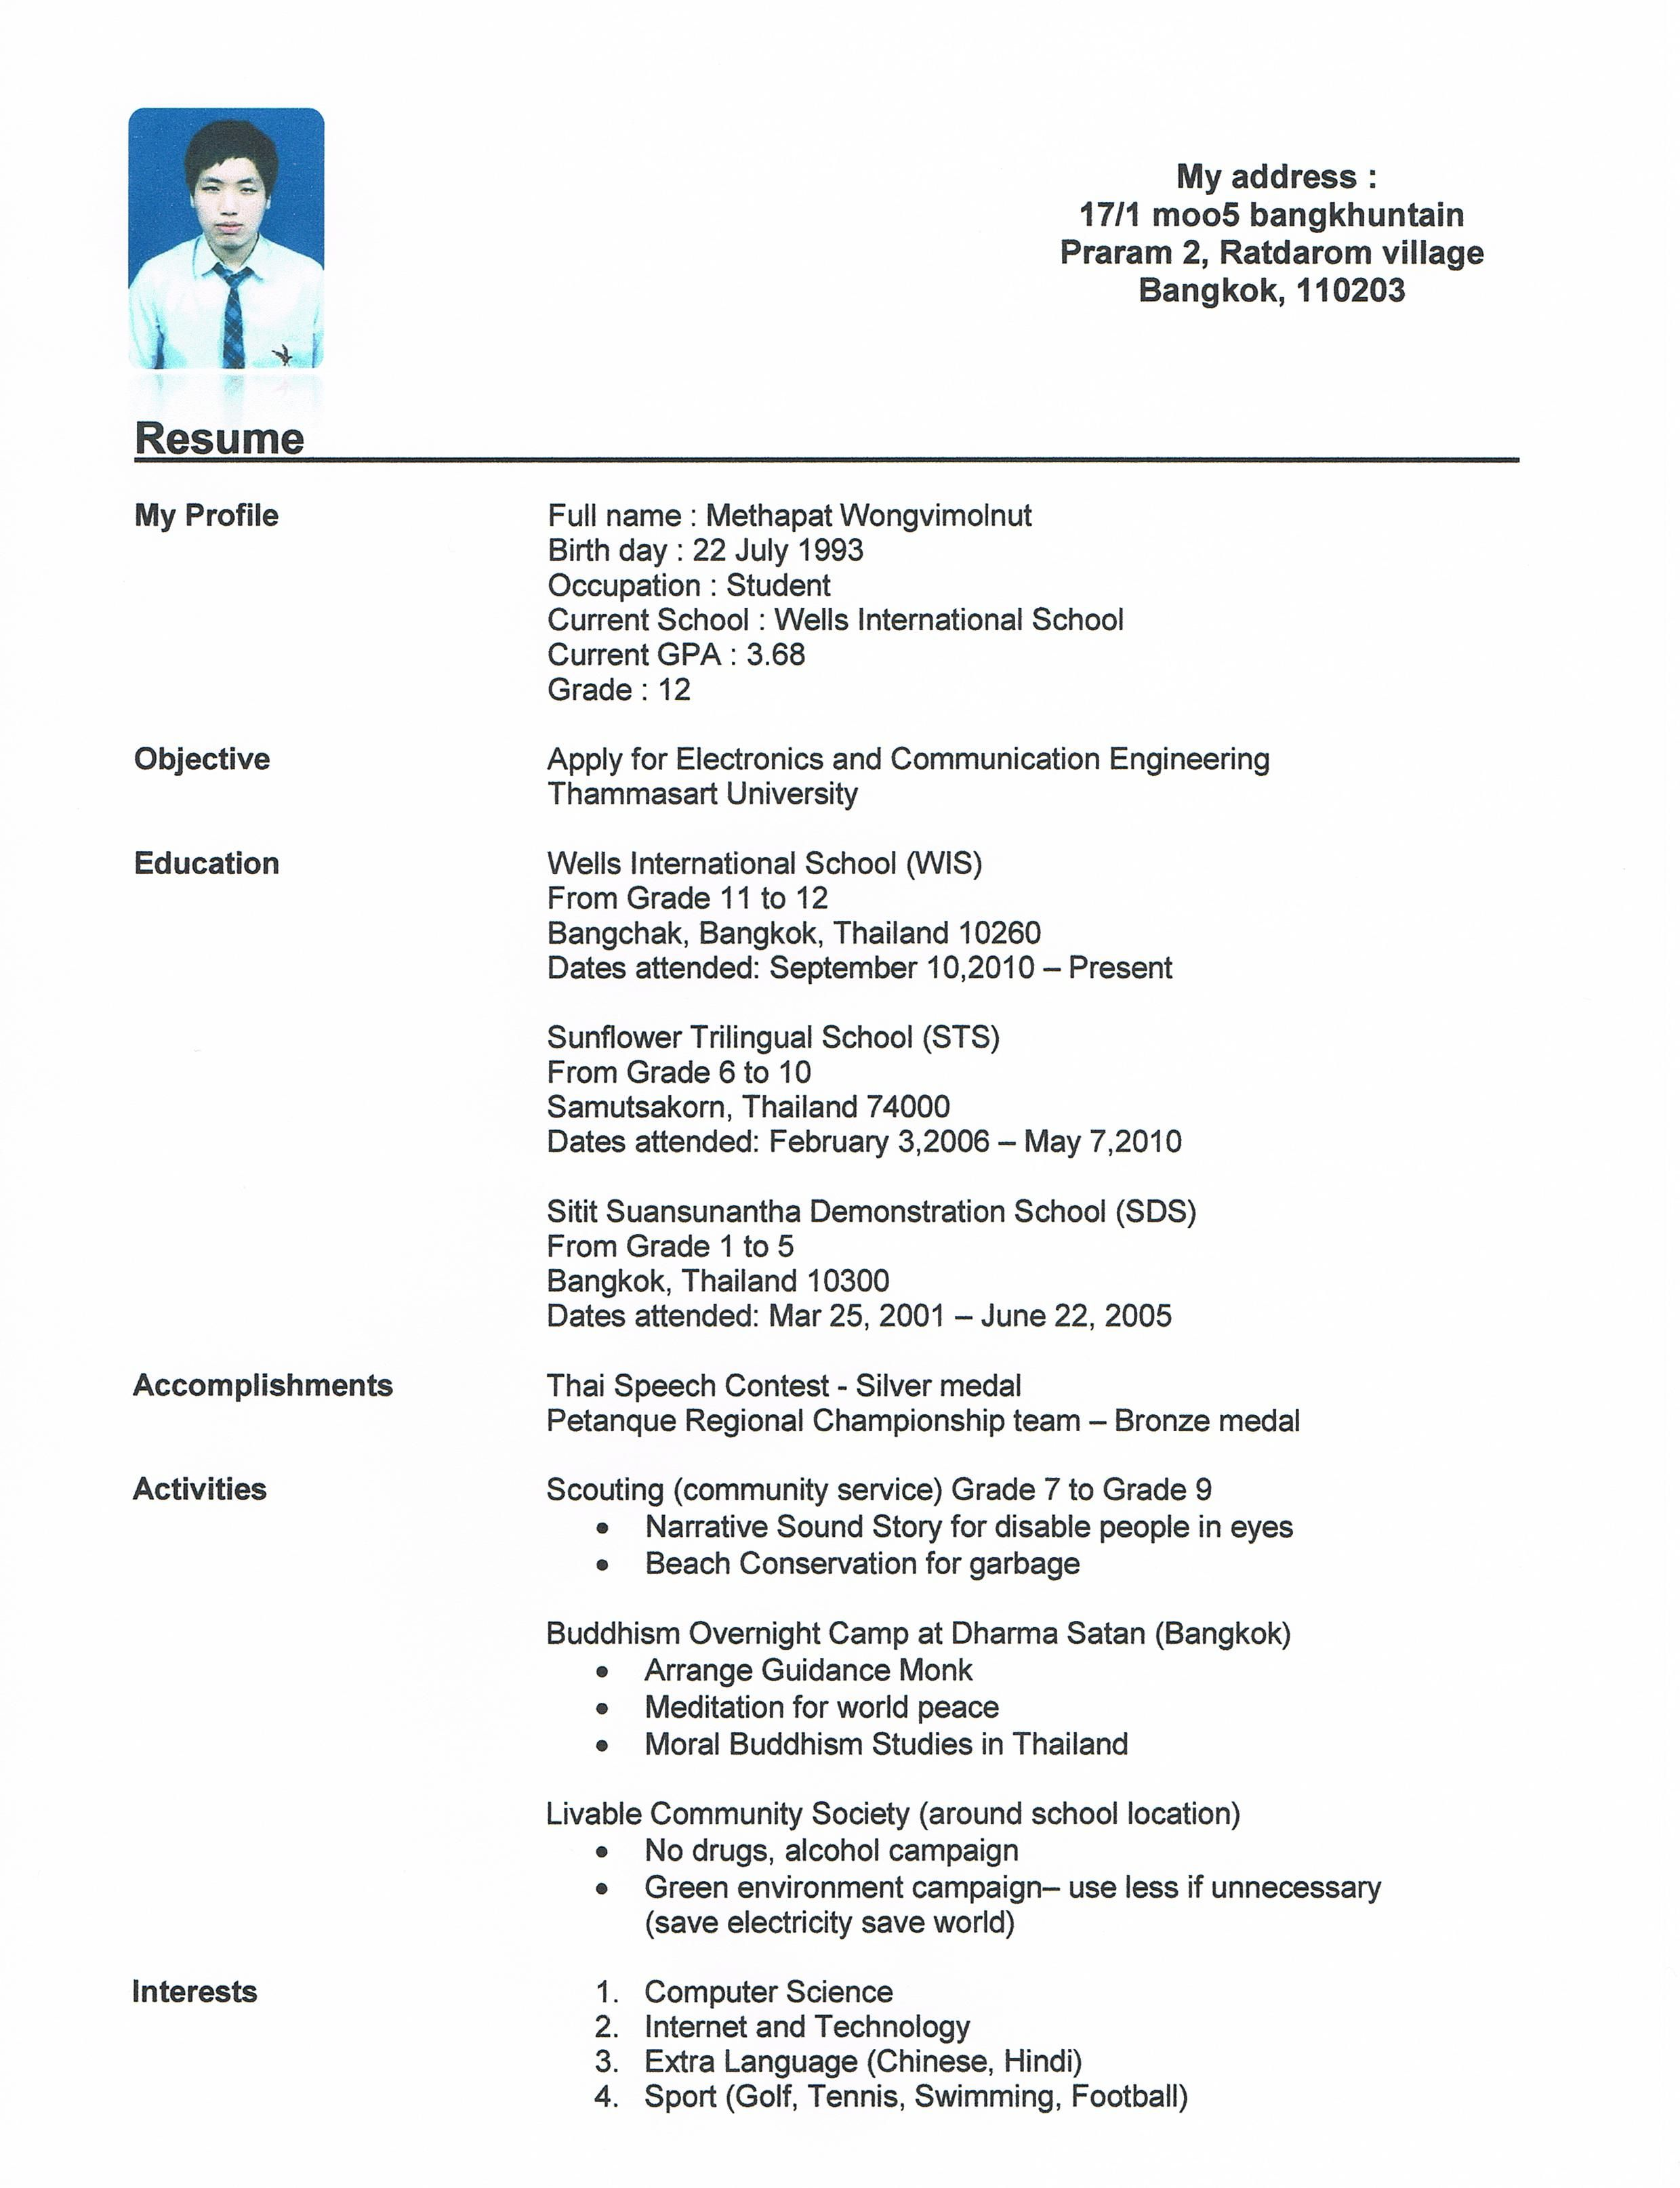 Student Resume Sample high school student resume template Job Resume Template For High School Student 93 Mesmerizing Resume Examples For Jobs Of Resumes High